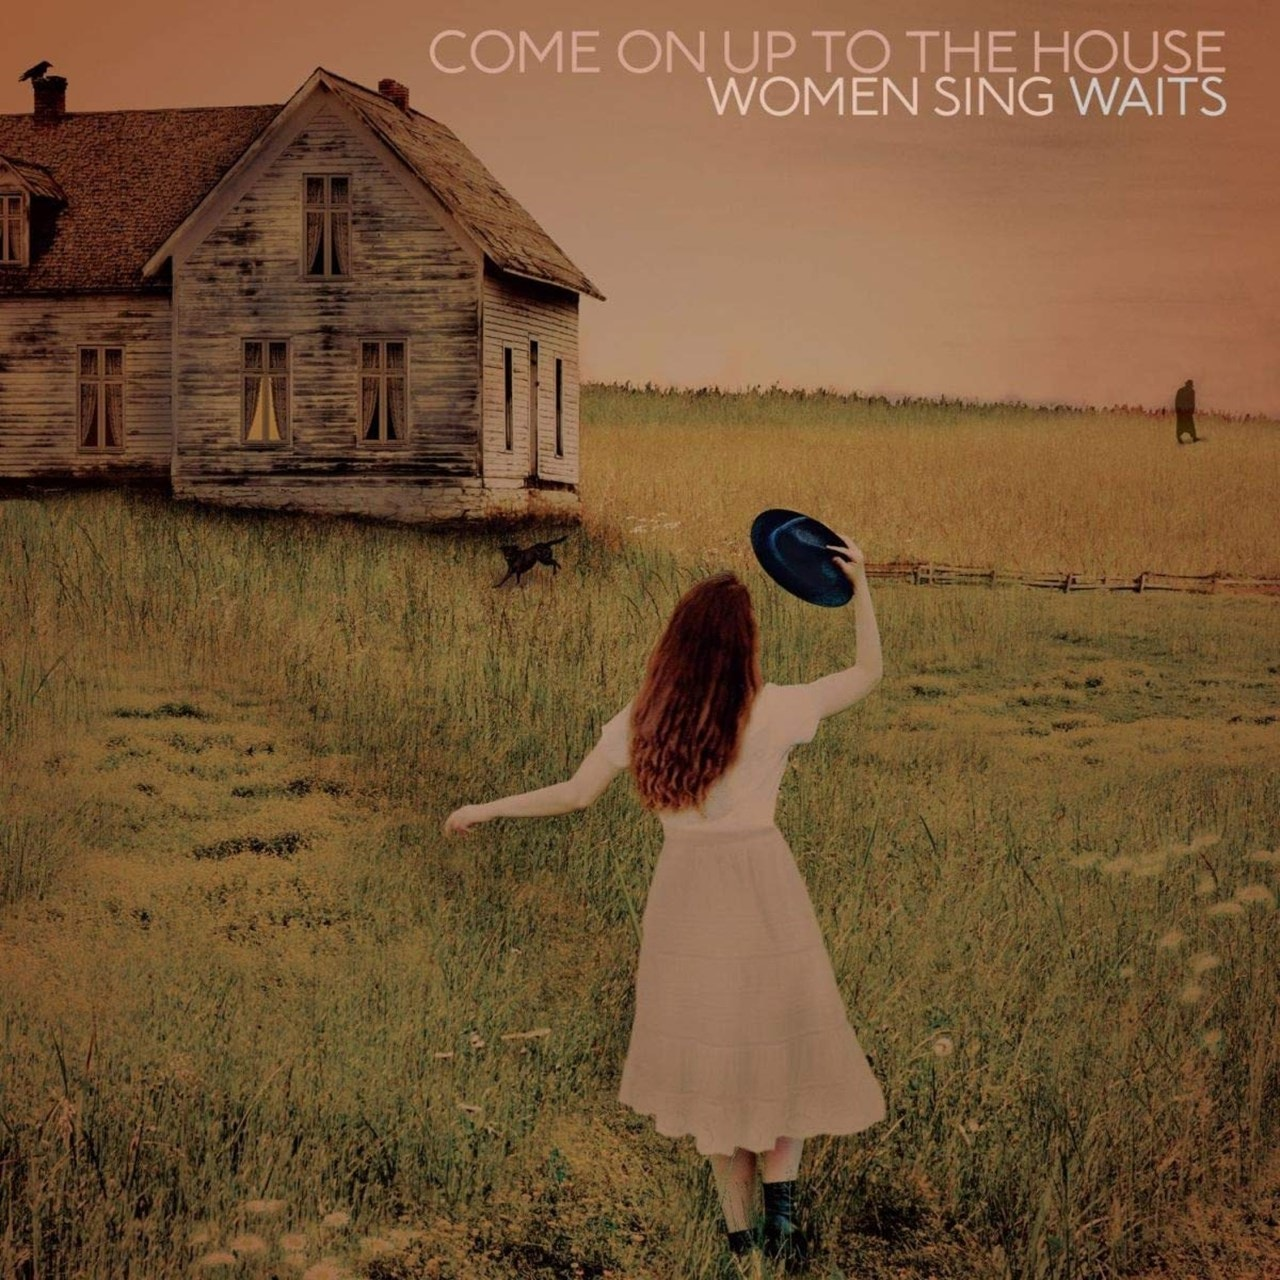 Come On Up to the House: Women Sing Waits - 1